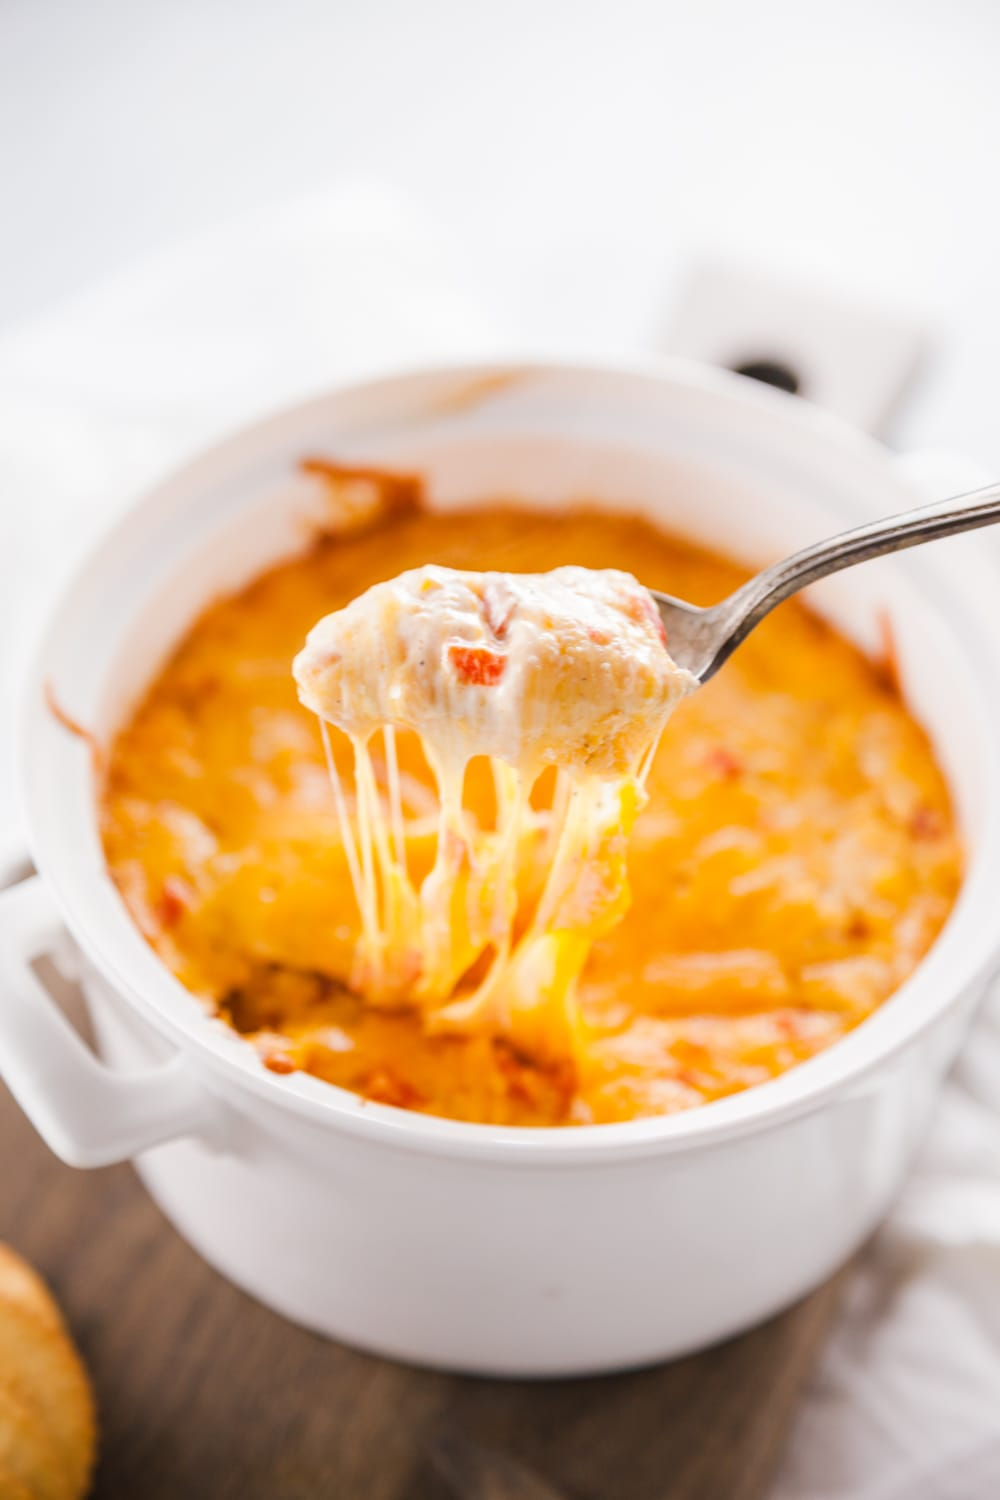 Baked Pimento Cheese Dip